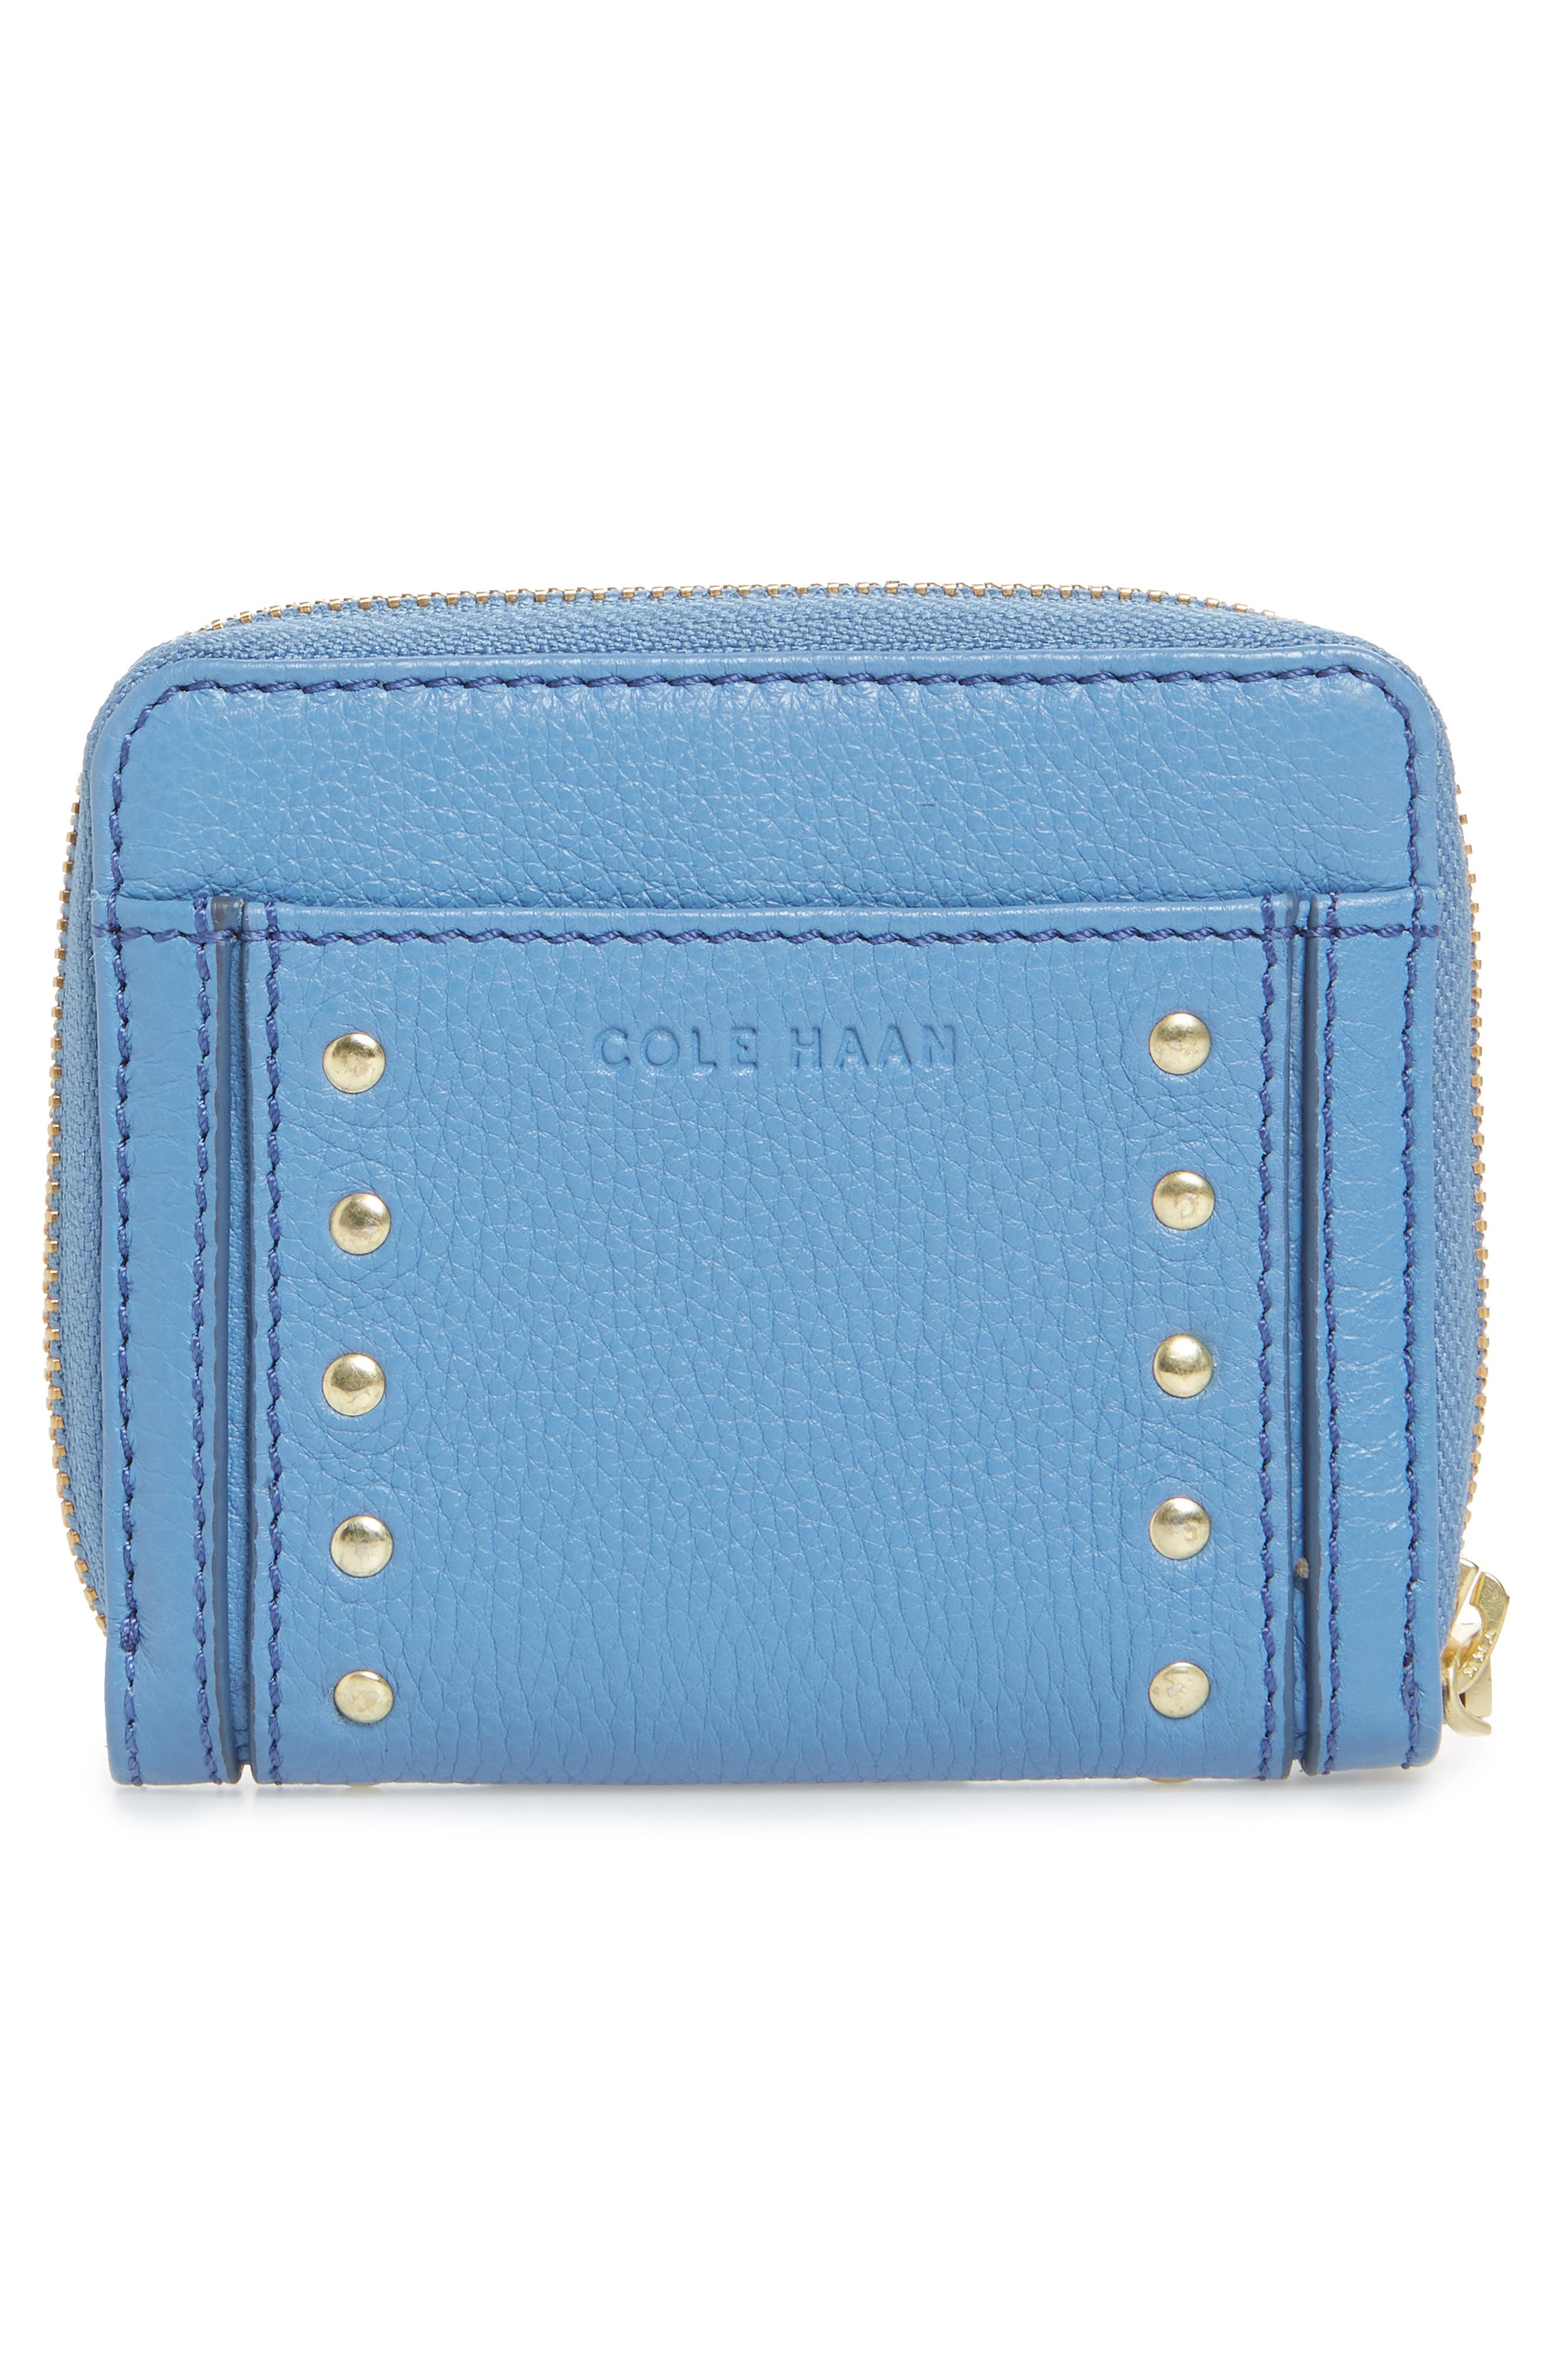 Cassidy Small RFID Leather Zip Wallet,                             Alternate thumbnail 4, color,                             Riverside